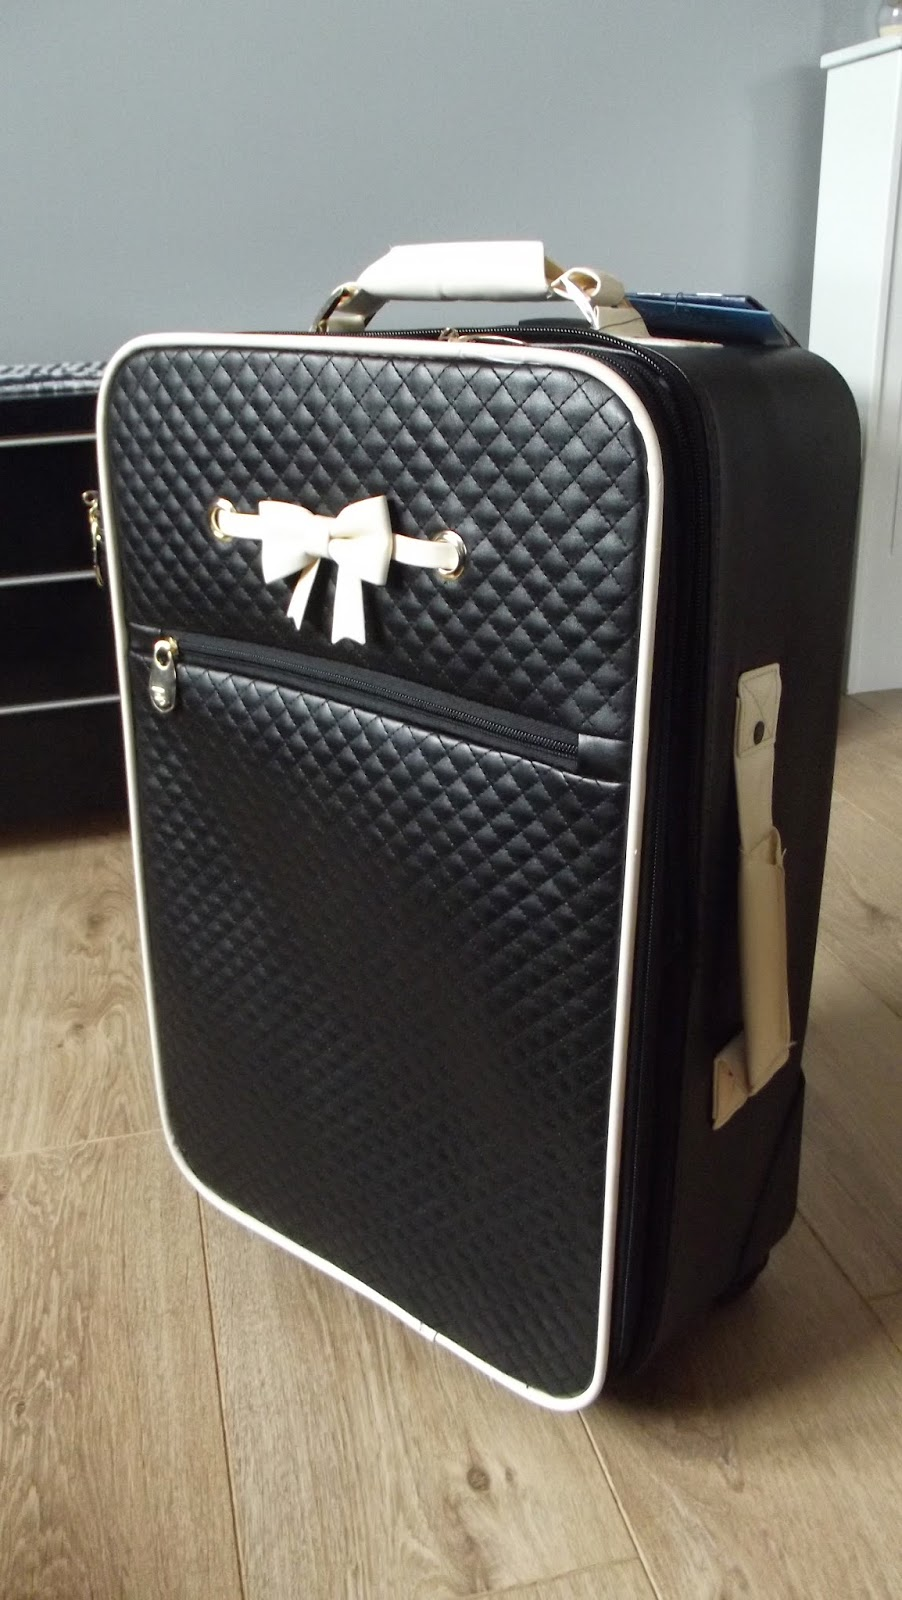 Dance Suitcase For Competition